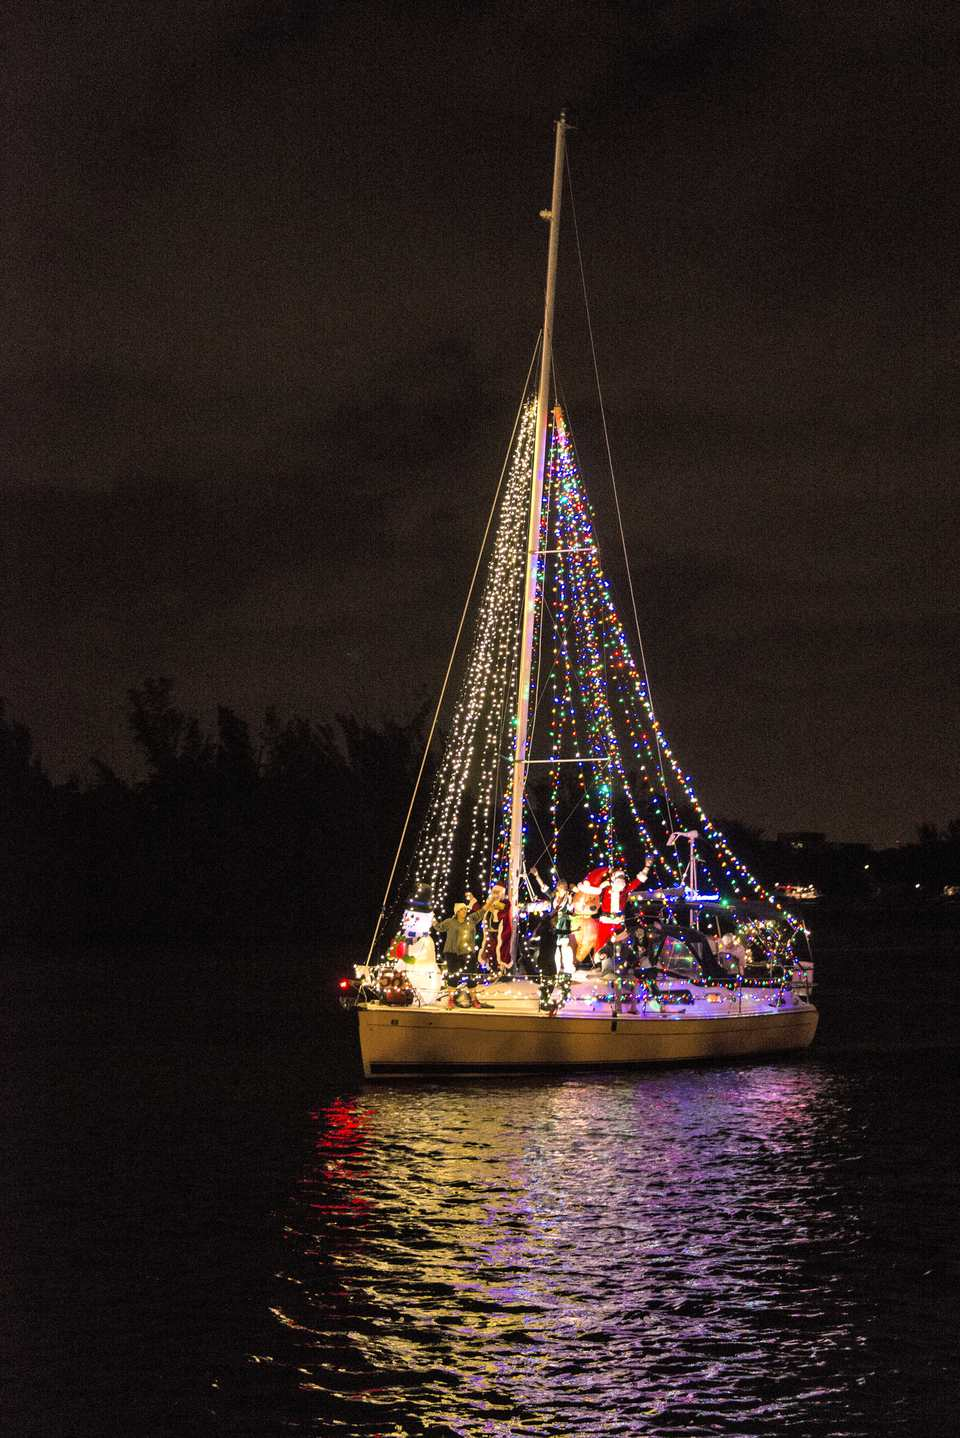 A boat in a Christmas boat parade in Costa Rica.